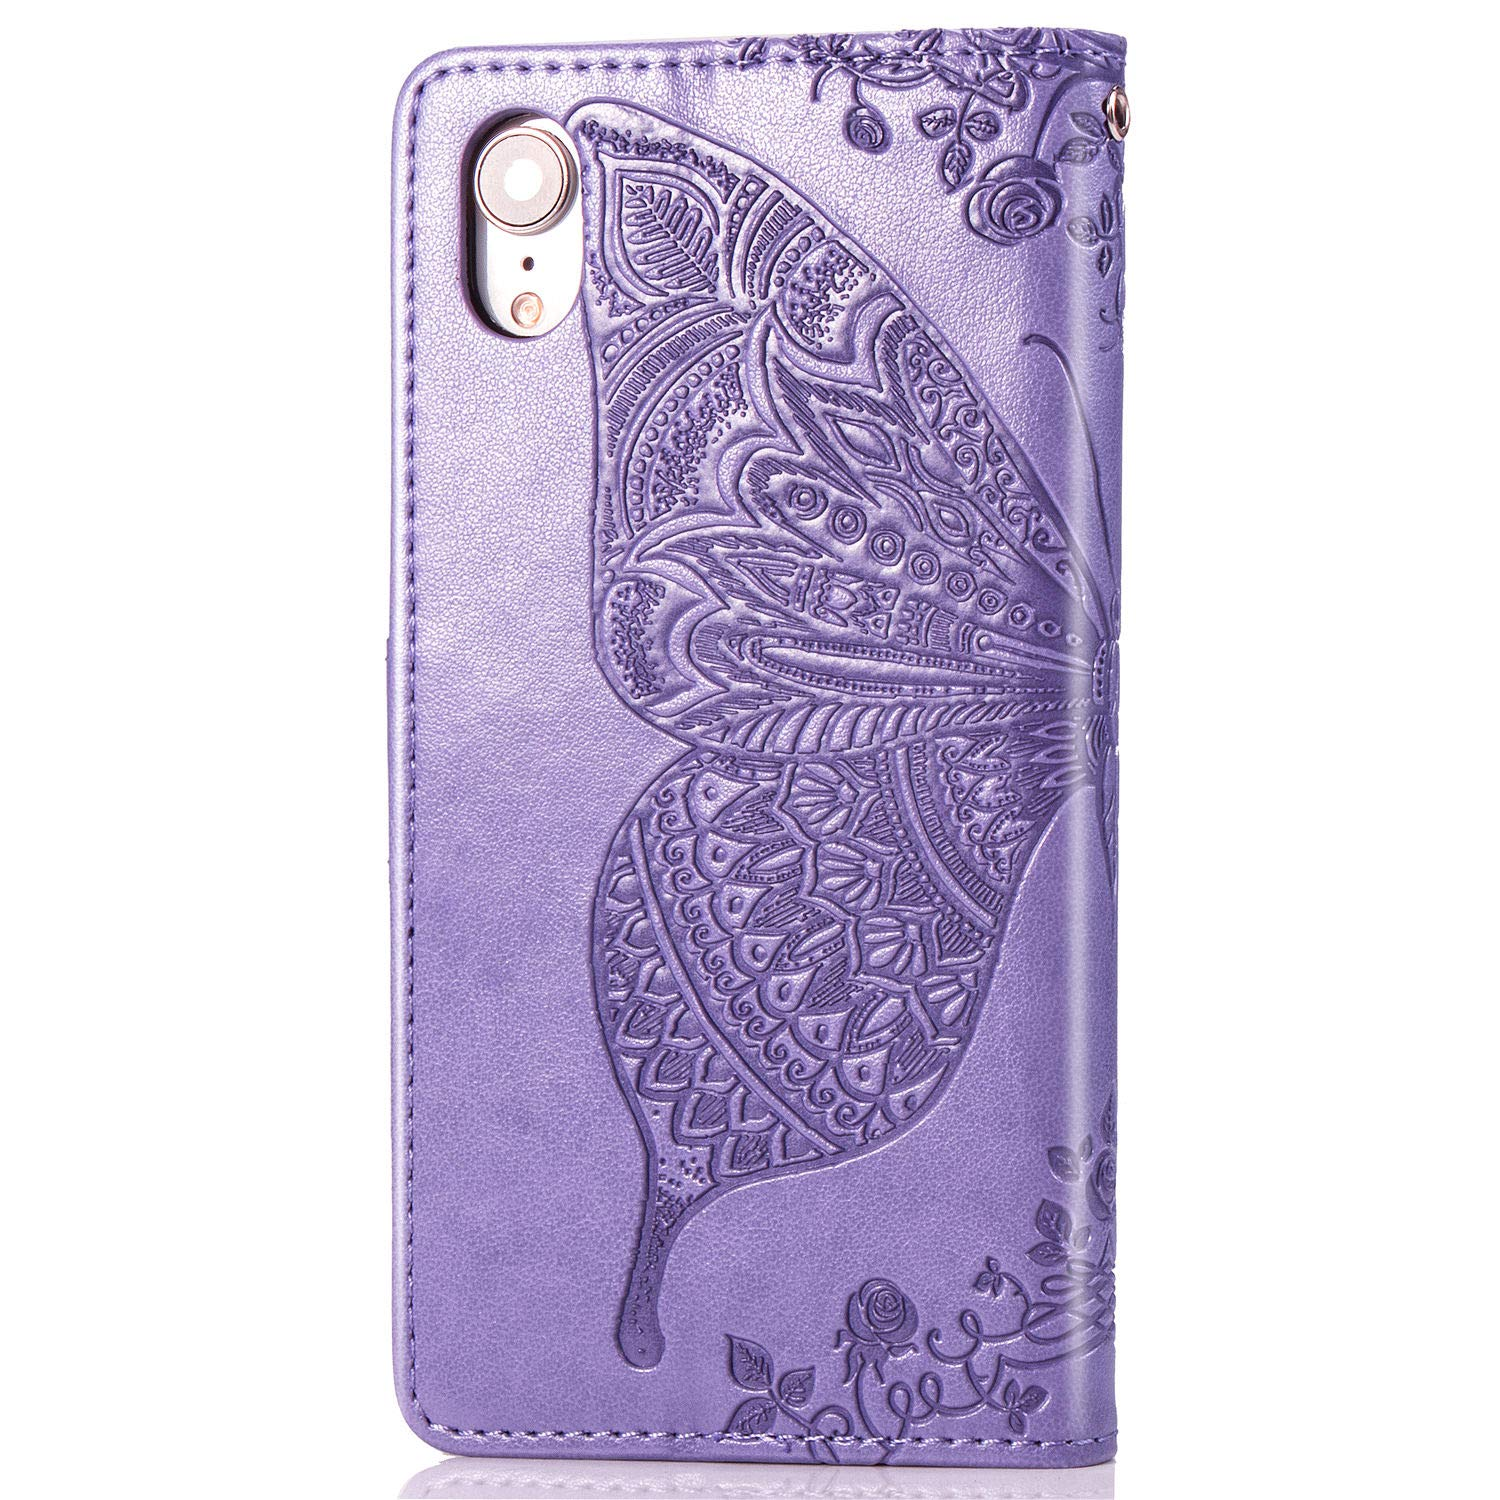 Dust Plug Stylus for iPhone XR Wallet Case,Rose Gold ikasus Case for iPhone XR Cover,Embossing Mandala Butterfly Rose Vine Flip Folio Wallet Case PU Leather Stand Card Slots Protective Case Cover